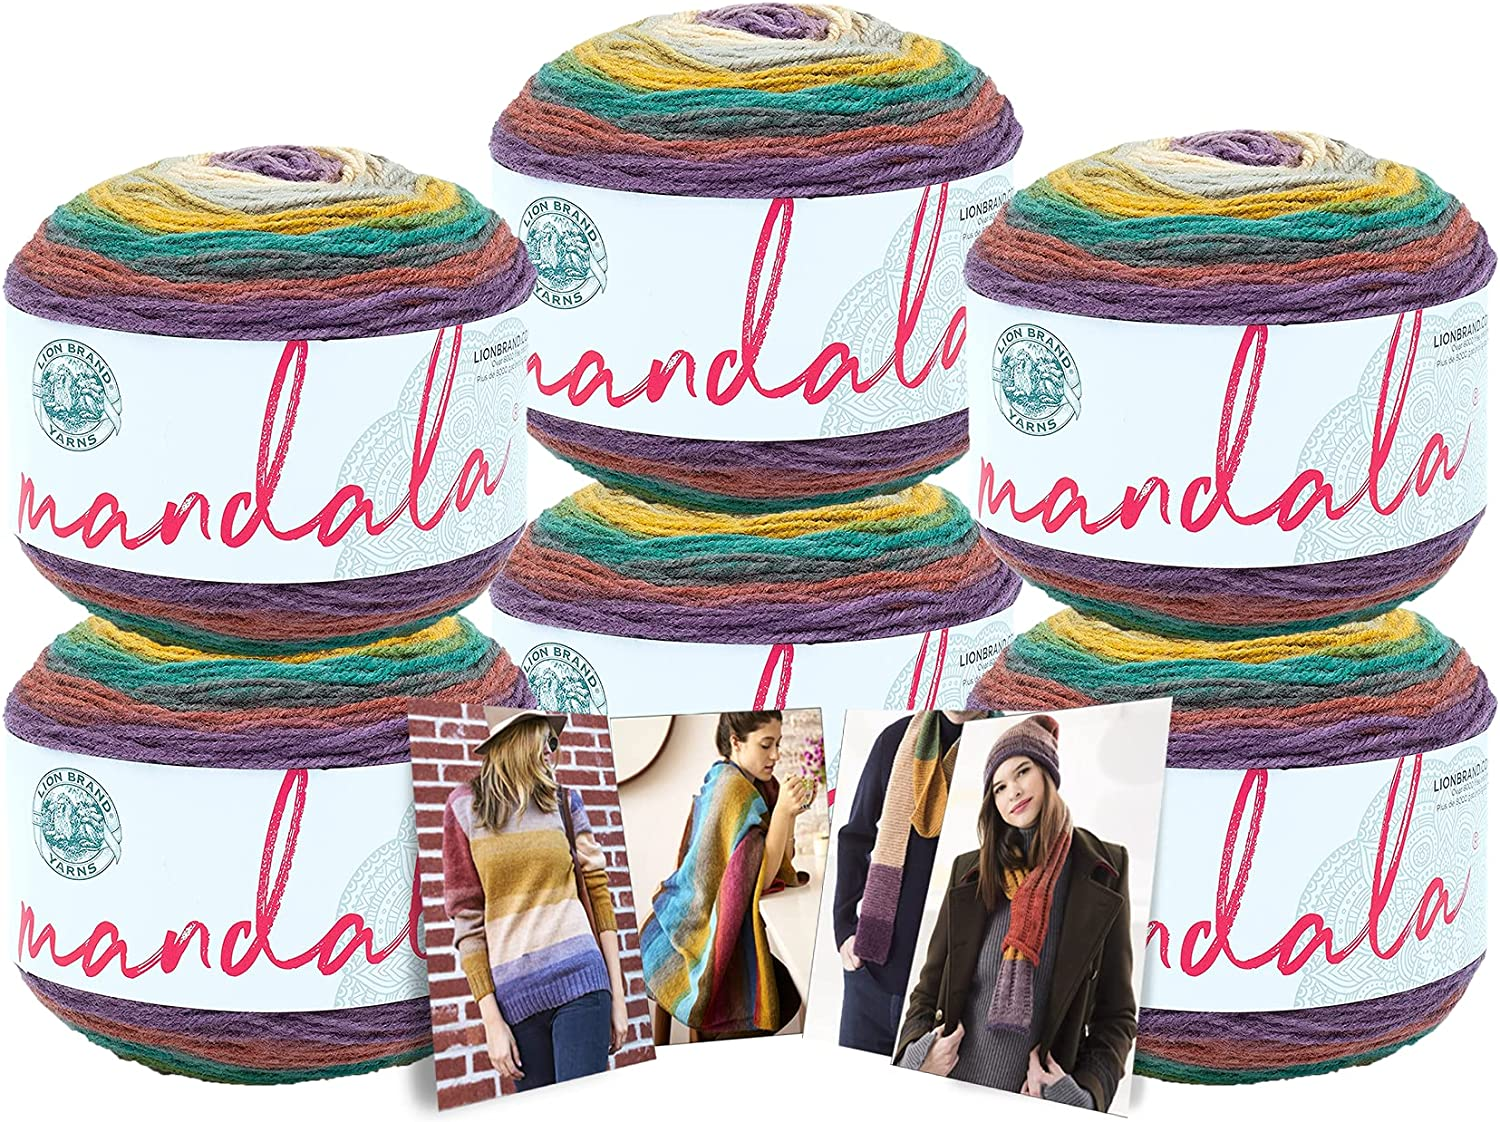 Lion Brand Mandala Yarn - Limited time for free shipping Virginia Beach Mall 6 Pack Cards Pattern Color with in Wa